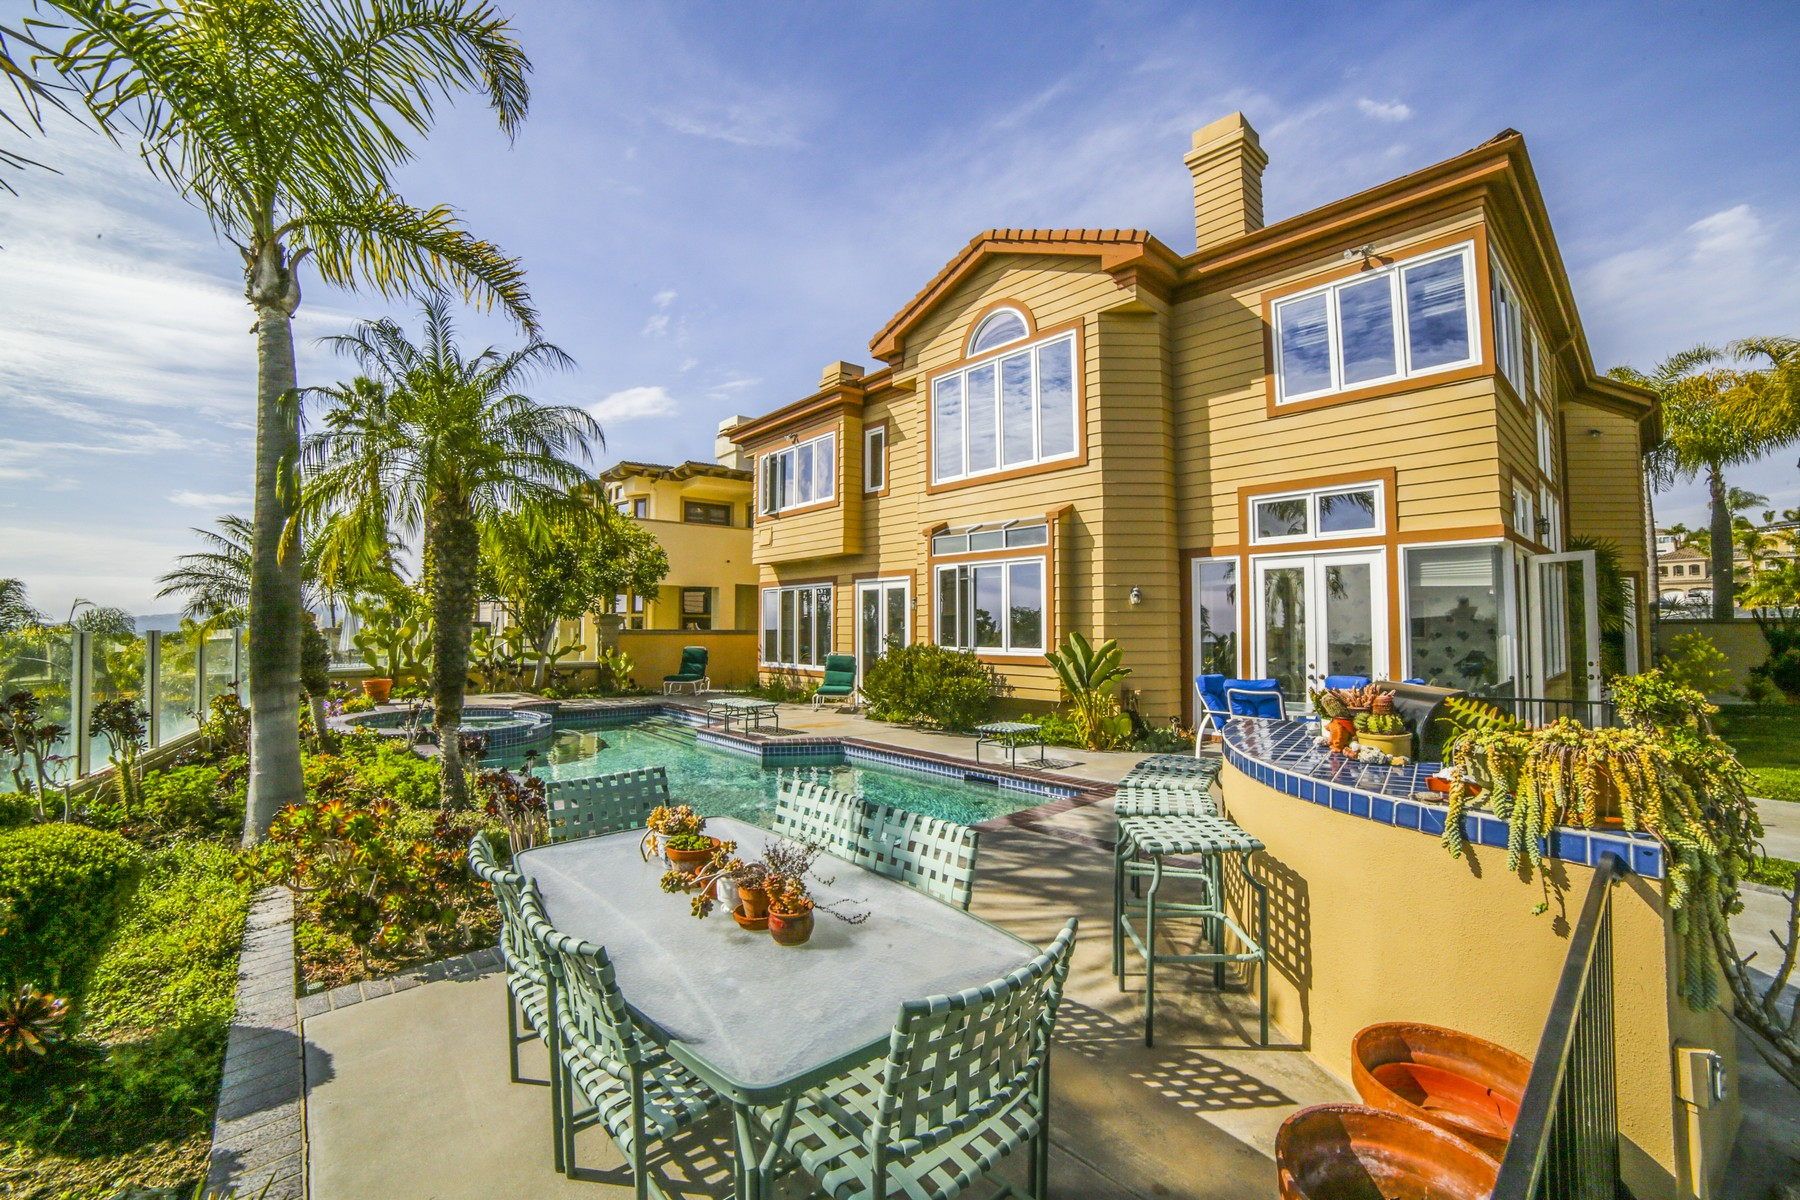 Single Family Home for Sale at 36 Newcastle Ln. 36 Newcastle Ln. Laguna Niguel, California 92677 United States